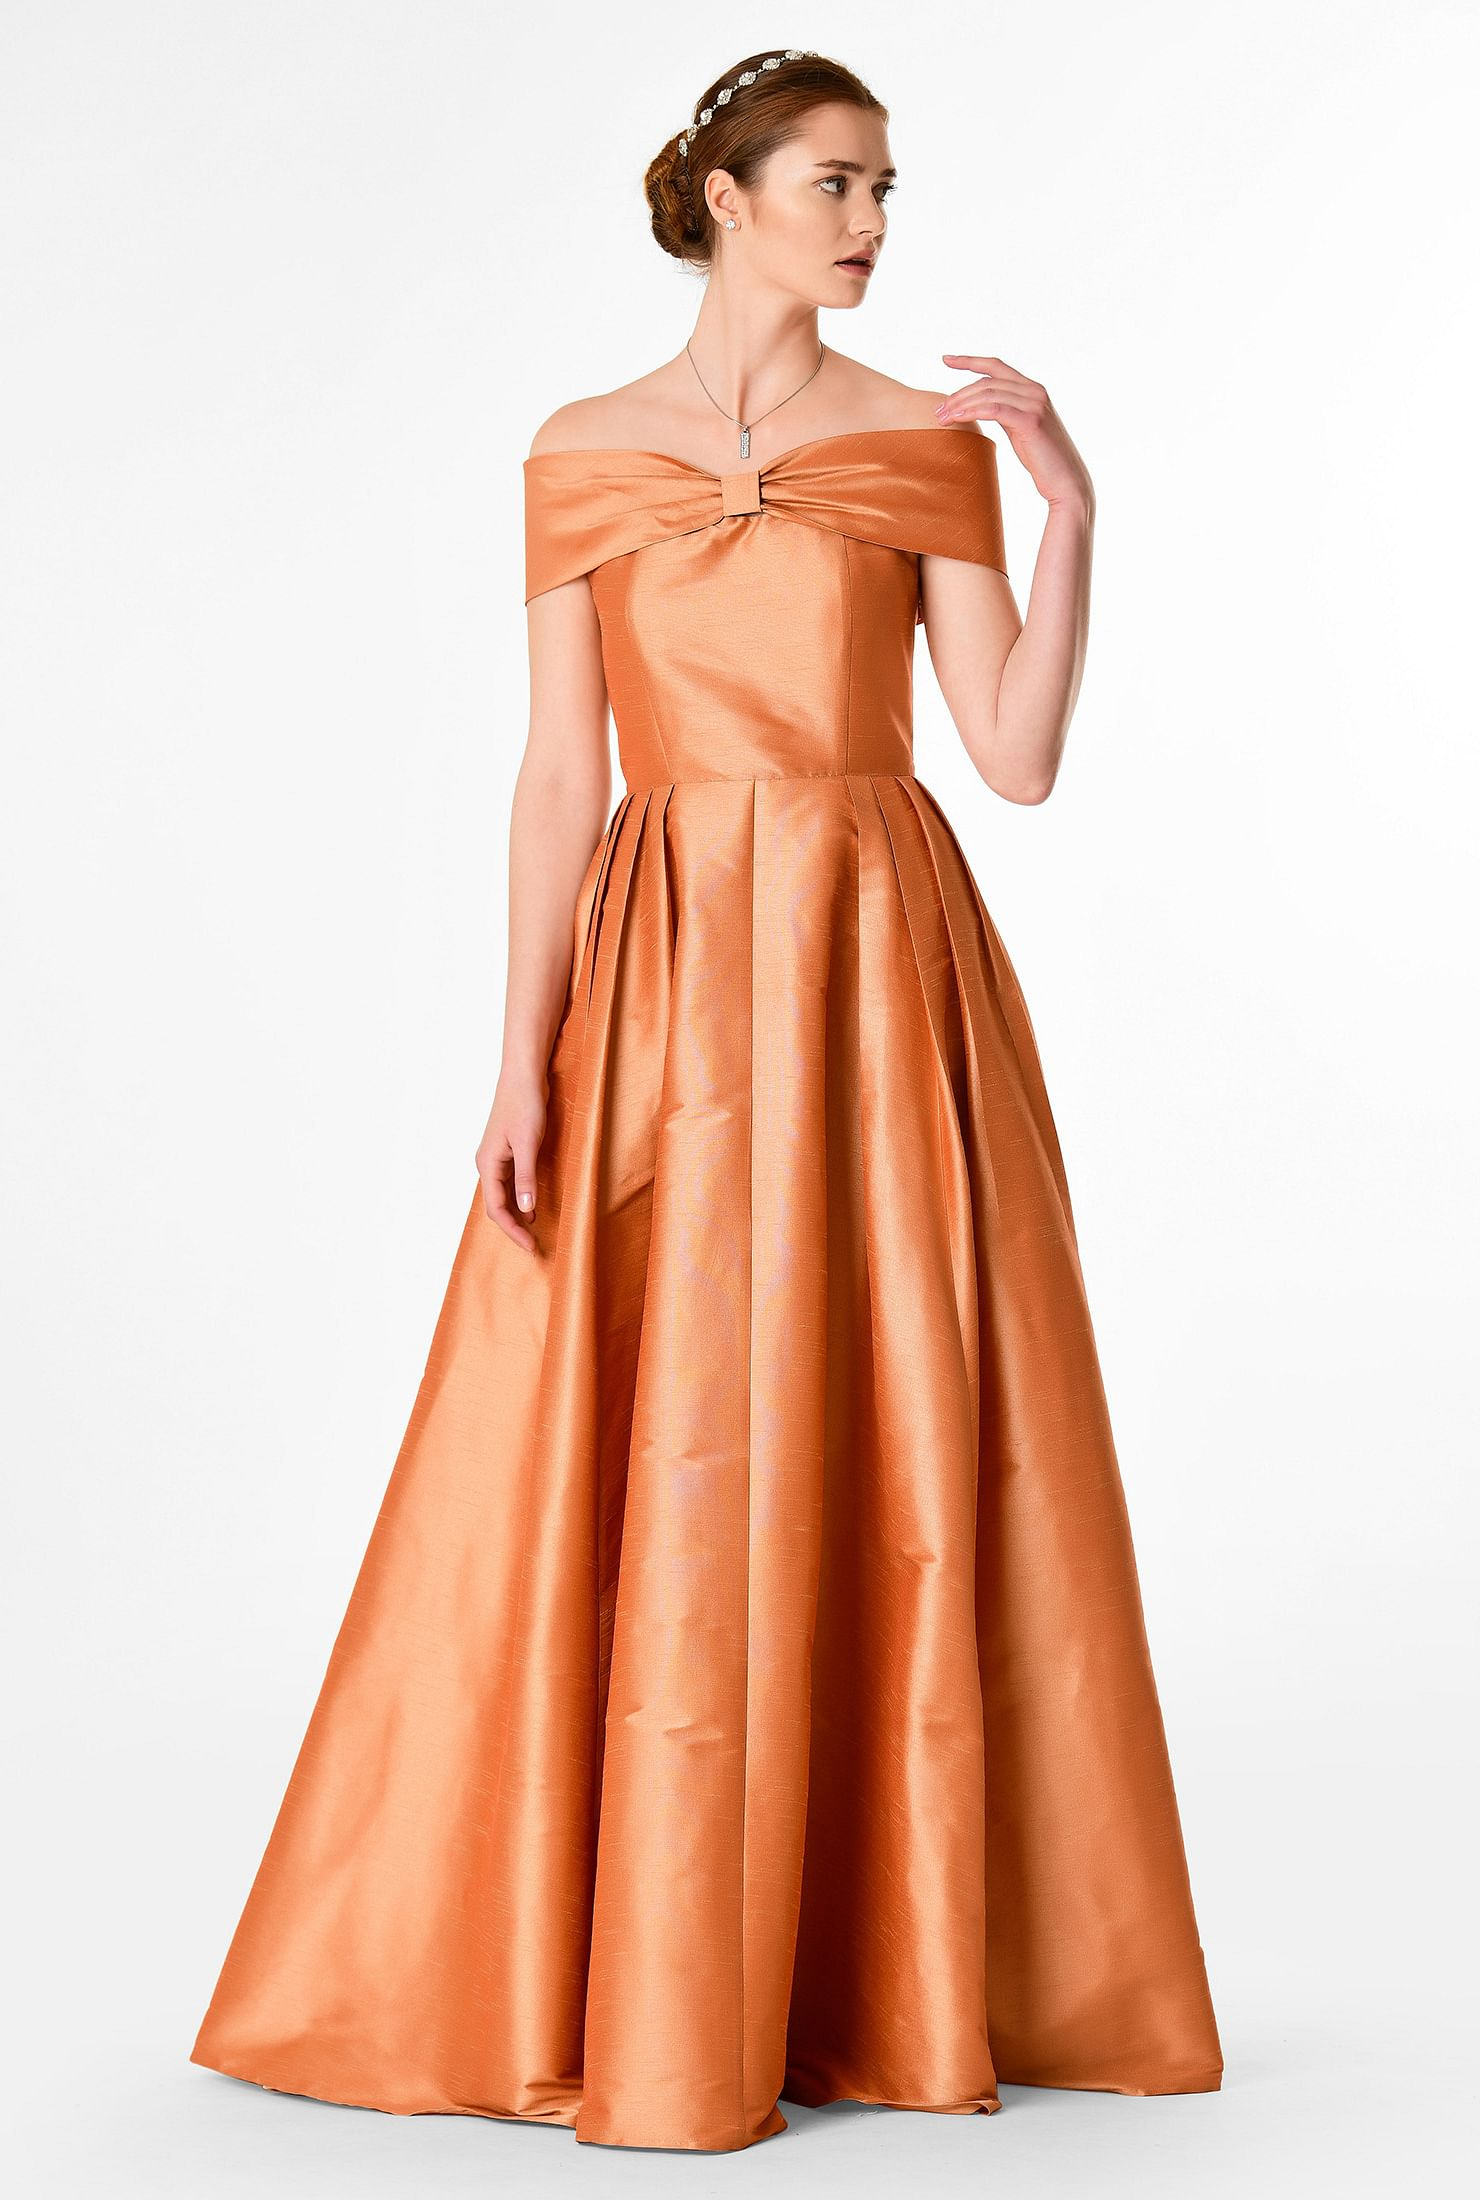 1950s Bridesmaid Dresses | 50s Bridesmaid Dresses Off-the-shoulder dupioni maxi dress $99.95 AT vintagedancer.com